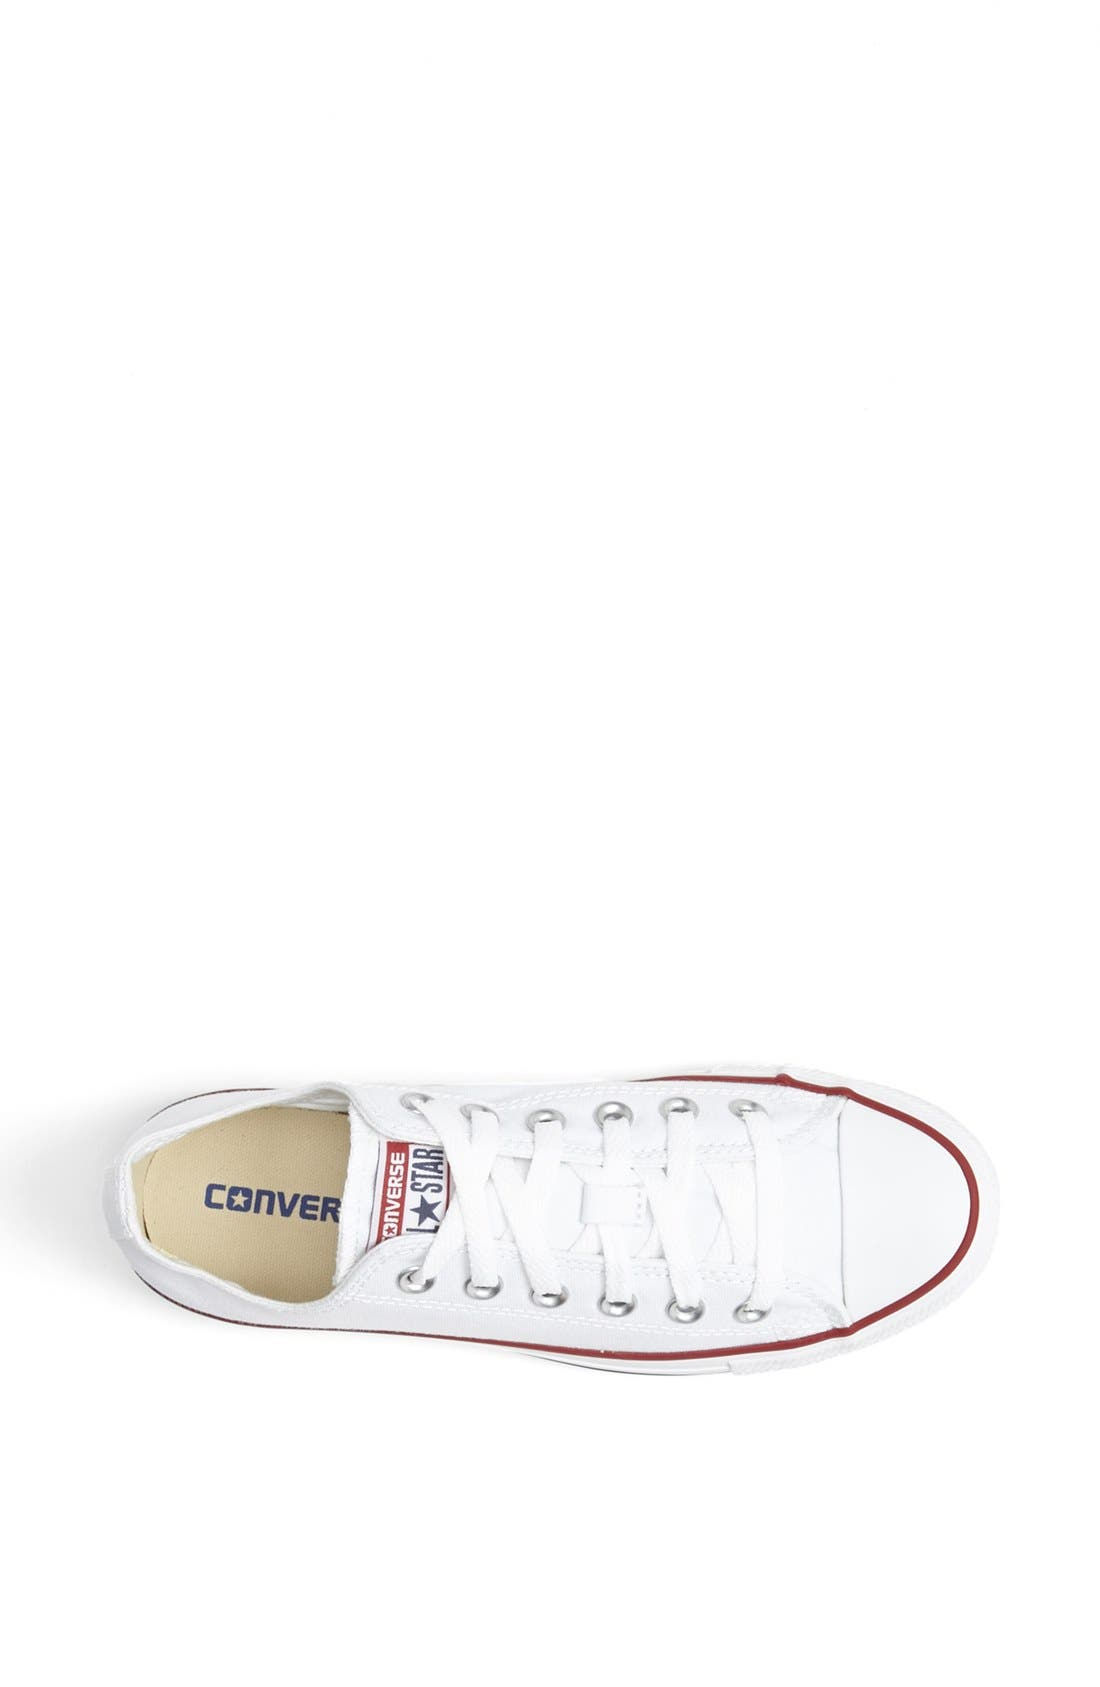 Chuck Taylor<sup>®</sup> Low Top Sneaker,                             Alternate thumbnail 9, color,                             OPTIC WHITE